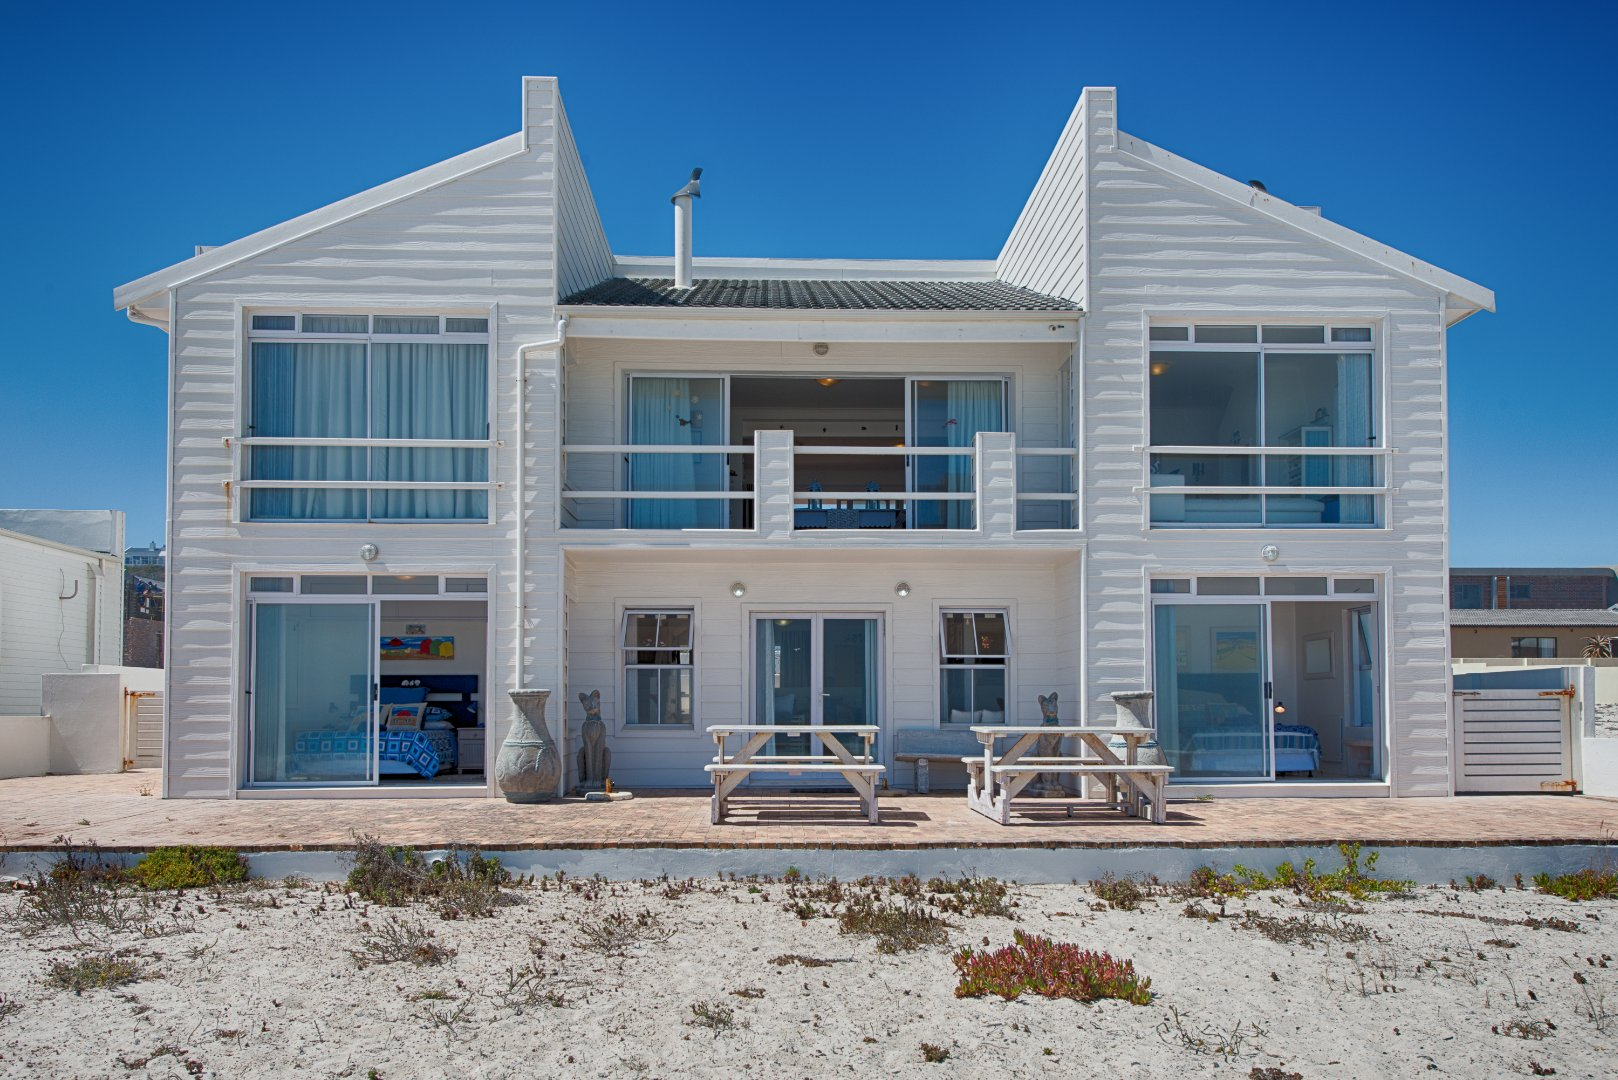 Yzerfontein, Yzerfontein Property  | Houses For Sale Yzerfontein, Yzerfontein, House 7 bedrooms property for sale Price:6,950,000